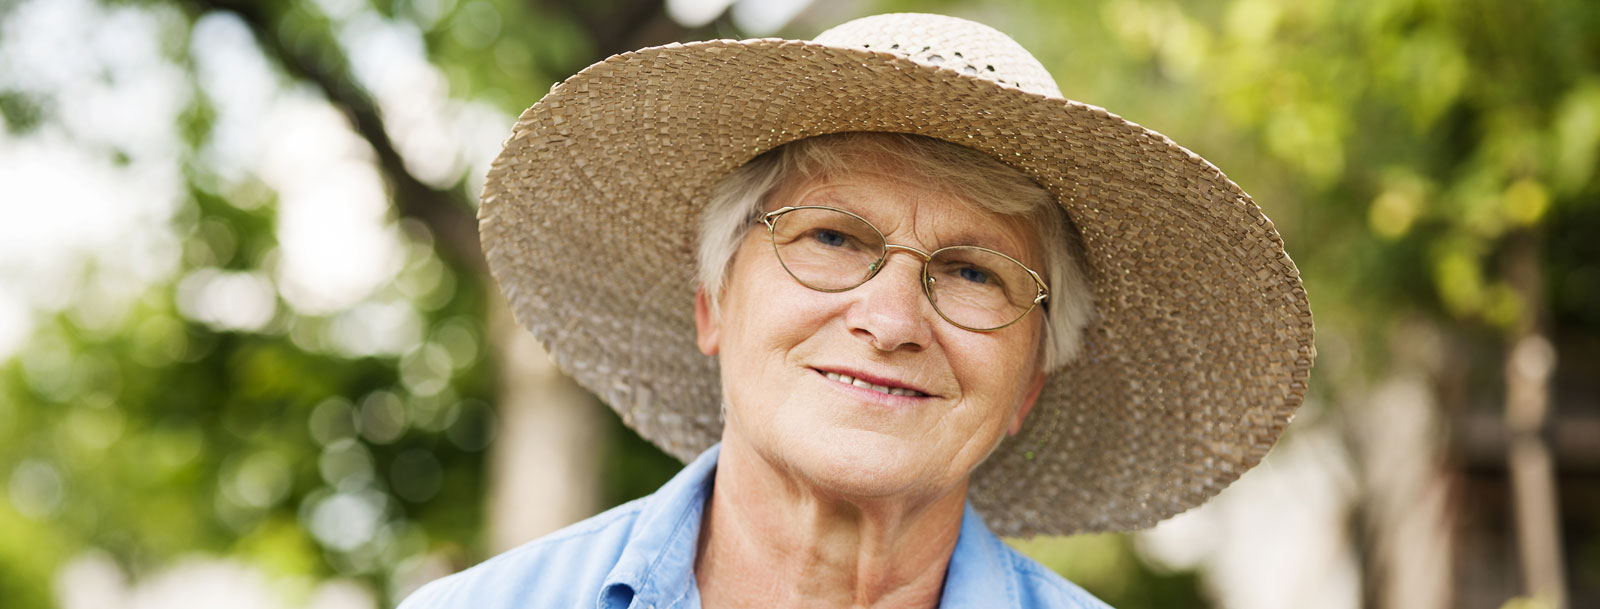 Senior living in Rolla care about your health and wellness